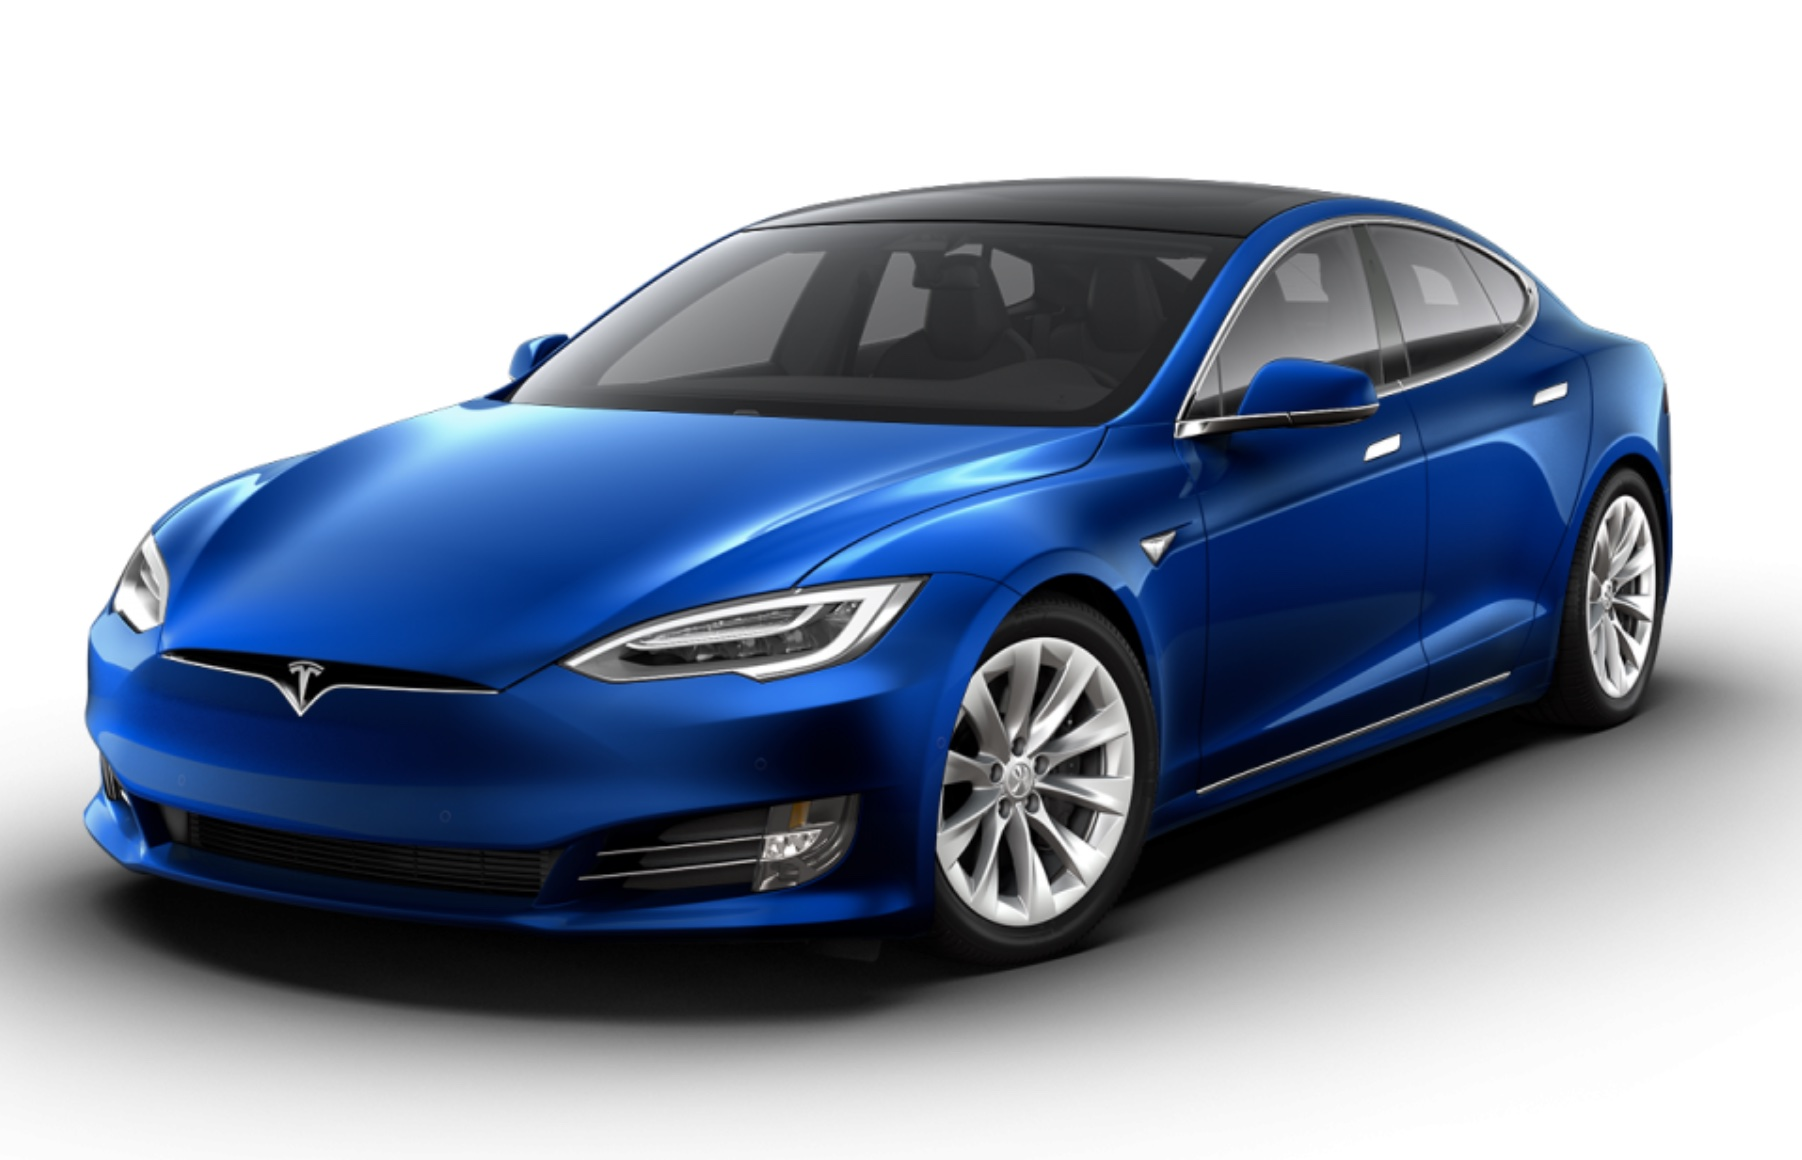 Tesla slashes prices again in China, dropping RMB 23,000 on two Model S models-cnTechPost